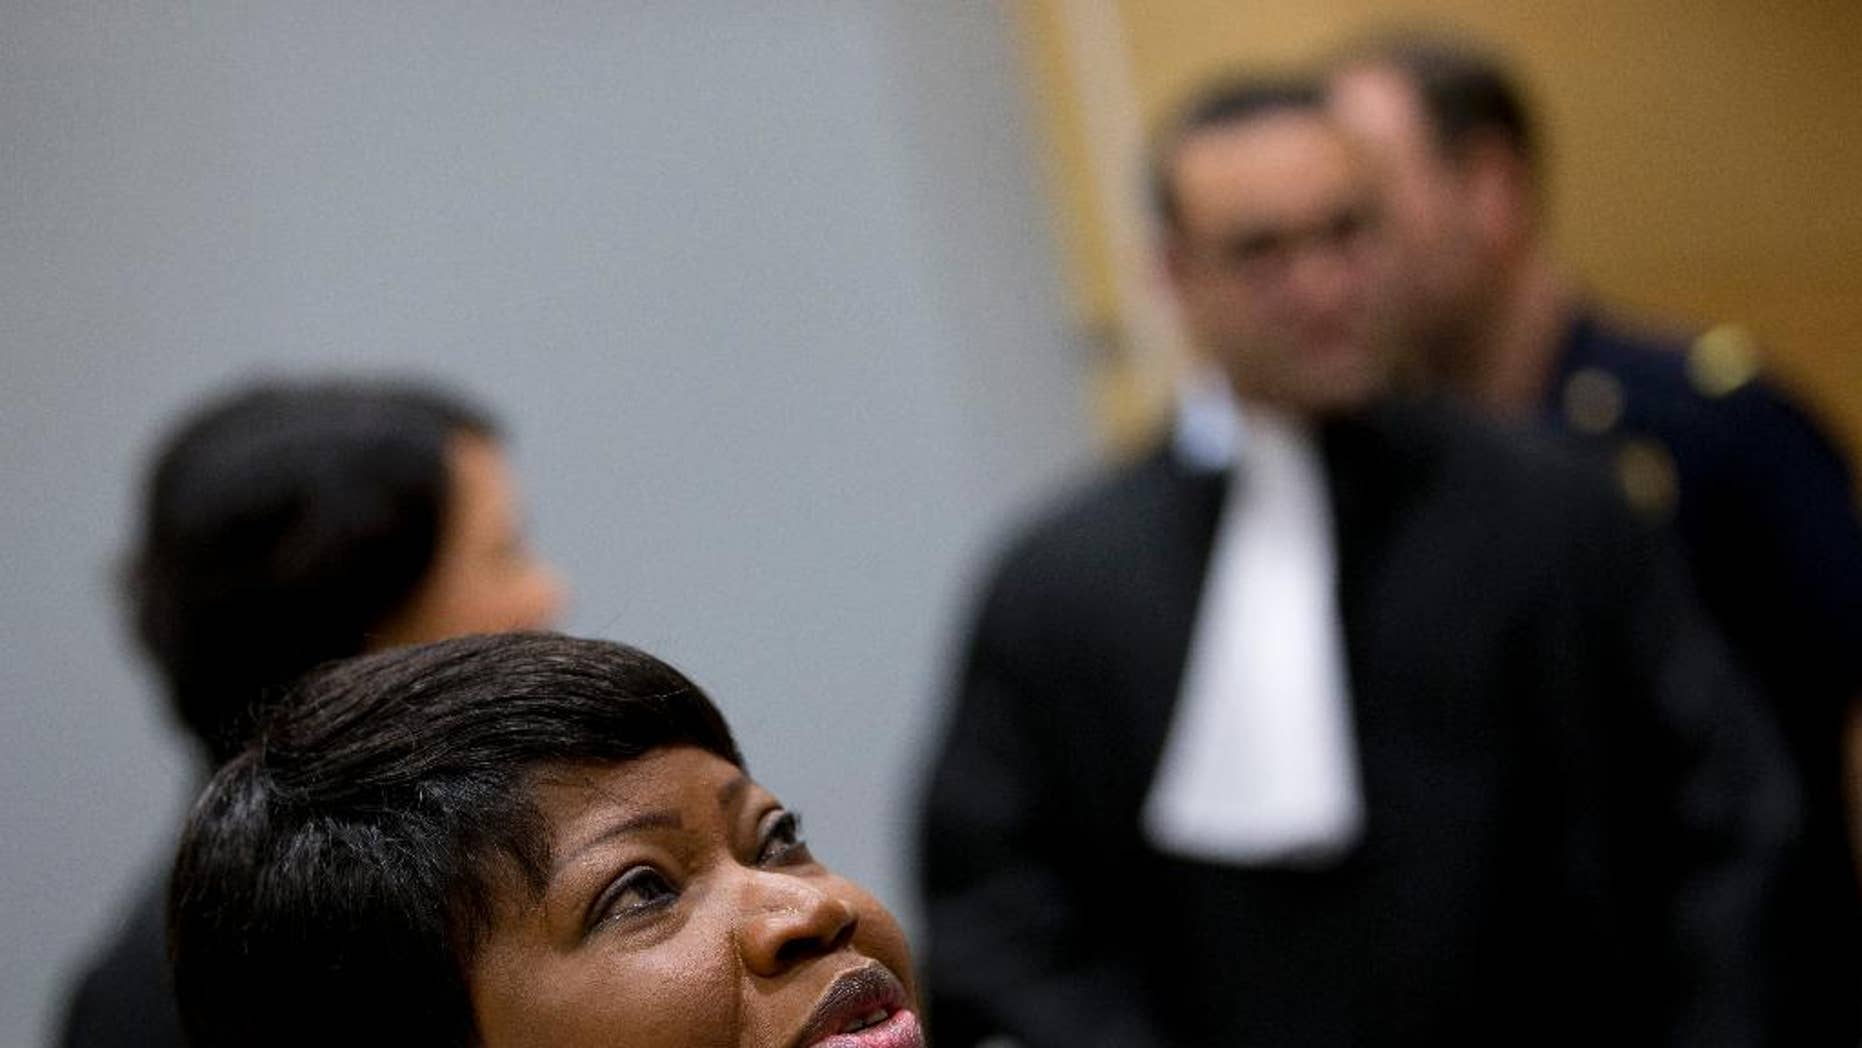 Prosecutor Fatou Bensouda of Gambia looks up as she waits for the start of the proceedings against Dominic Ongwen, a Ugandan commander in warlord Joseph Kony's feared militia, made his first appearance before judges at the International Criminal Court in The Hague, Netherlands, Monday, Jan. 26, 2015. Ongwen arrived in The Hague last week after being taken into custody in Central African Republic. He faces war crimes and crimes against humanity charges for his alleged role in a reign of terror that has spanned more than 25 years in central Africa's Great Lakes region. (AP Photo/Peter Dejong, Pool)